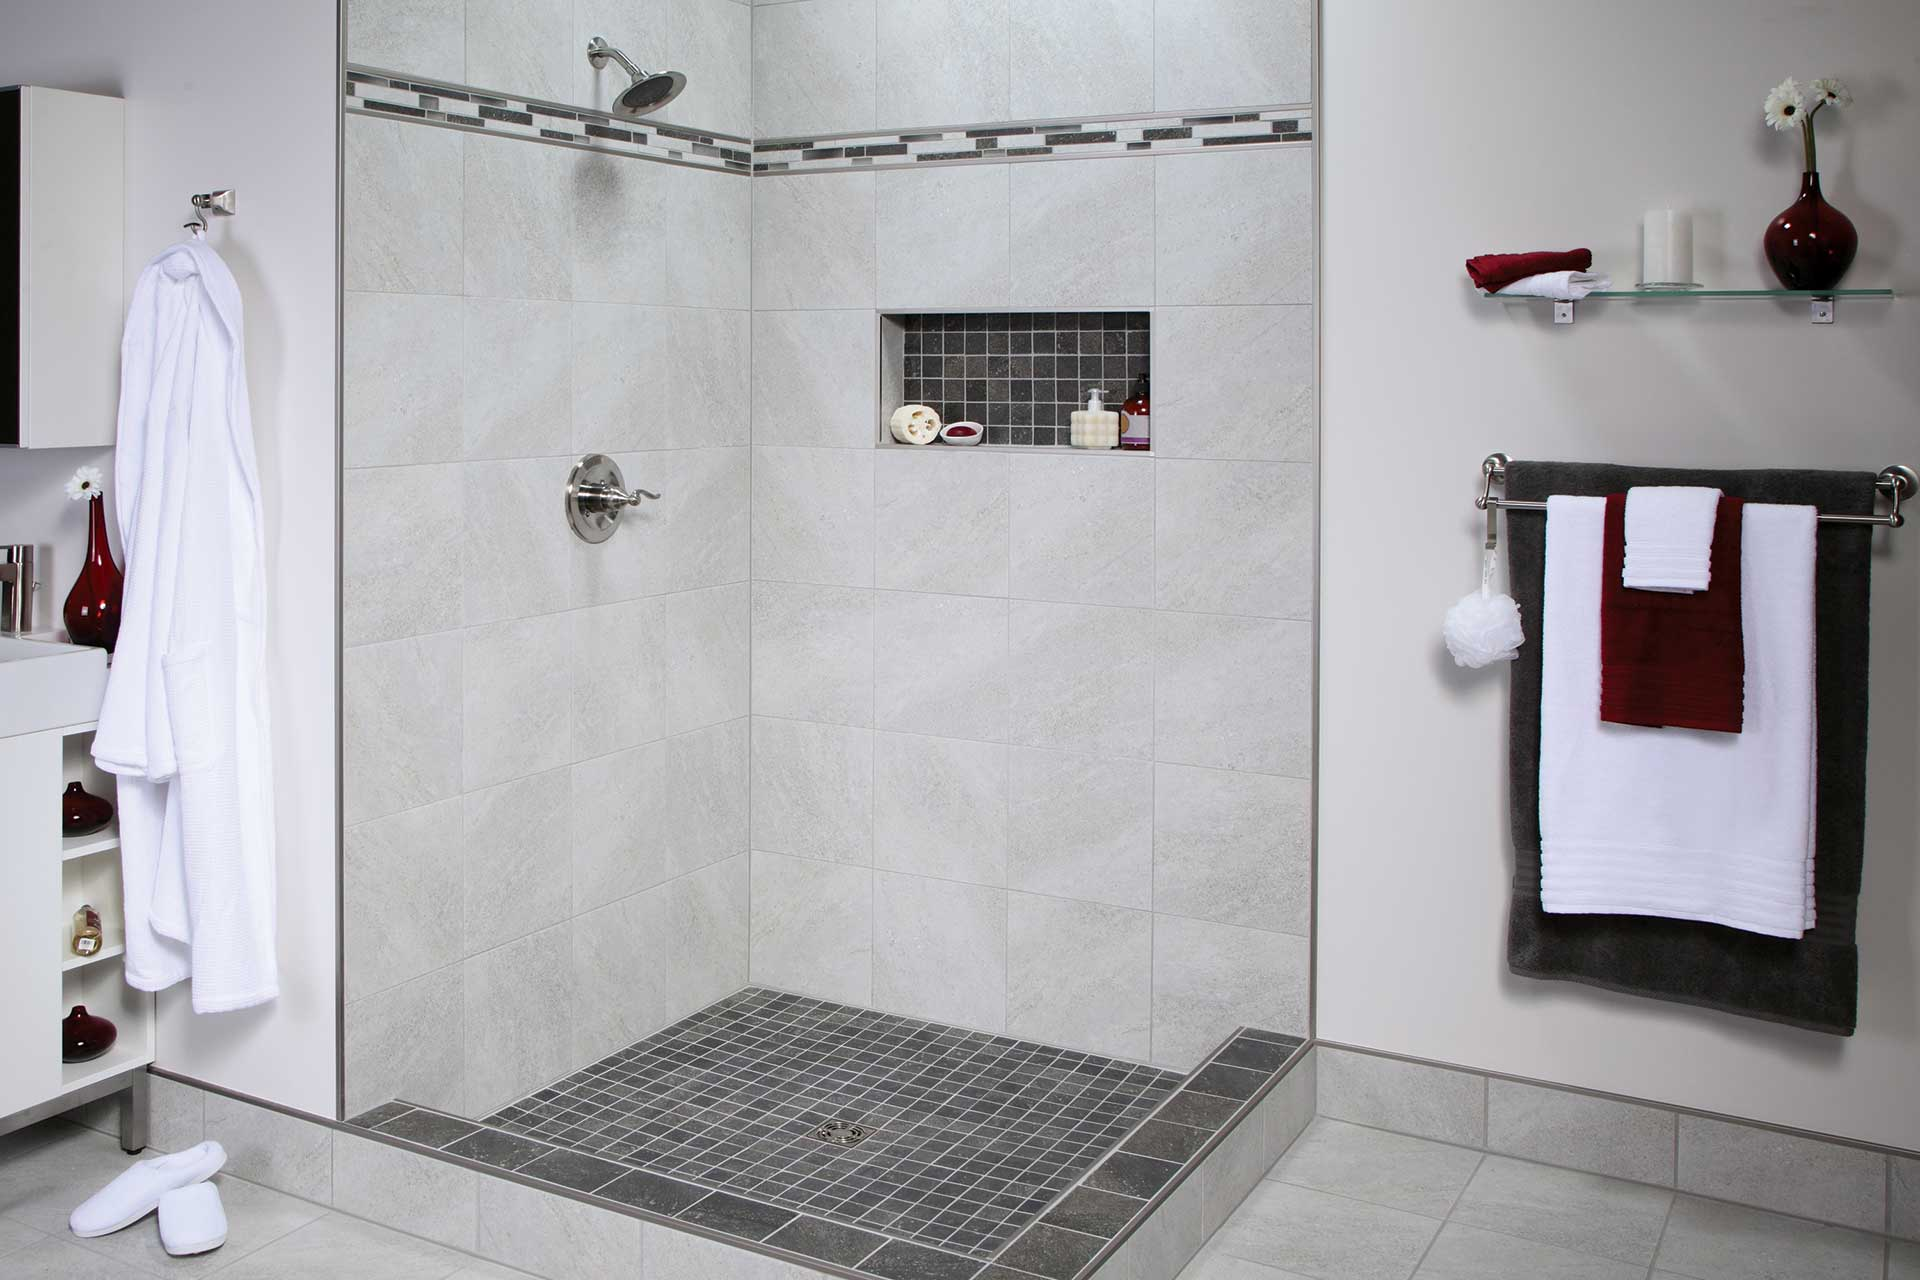 SH Schluter Kerdi Board Niche Shower Shelf San Diego Marble Tile ...